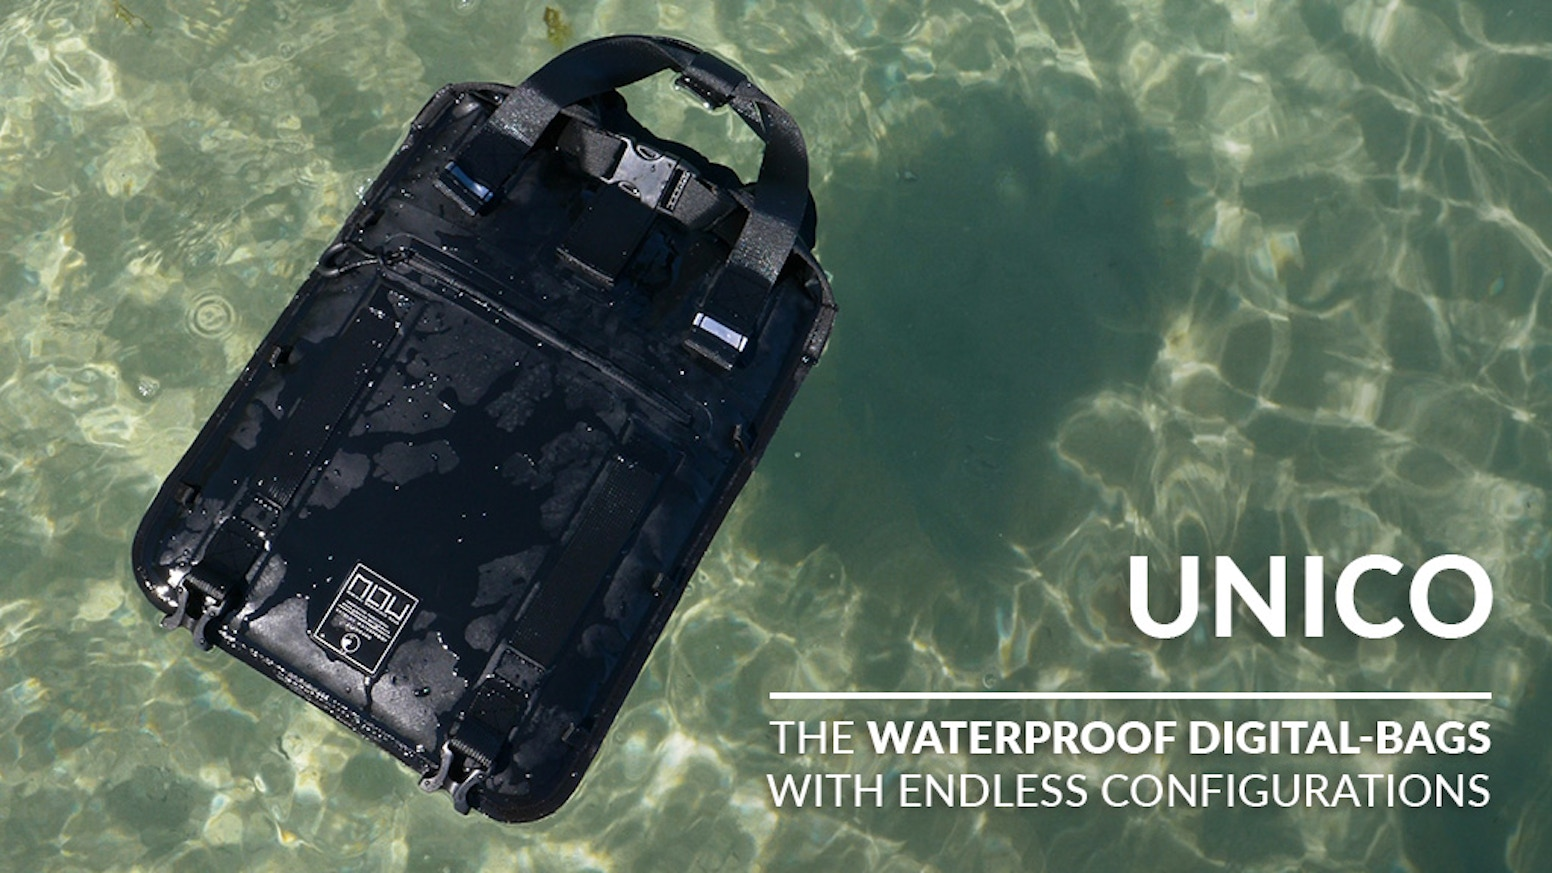 UNICO II Lets you carry your electronics without fear. Dry and safe no matter what!